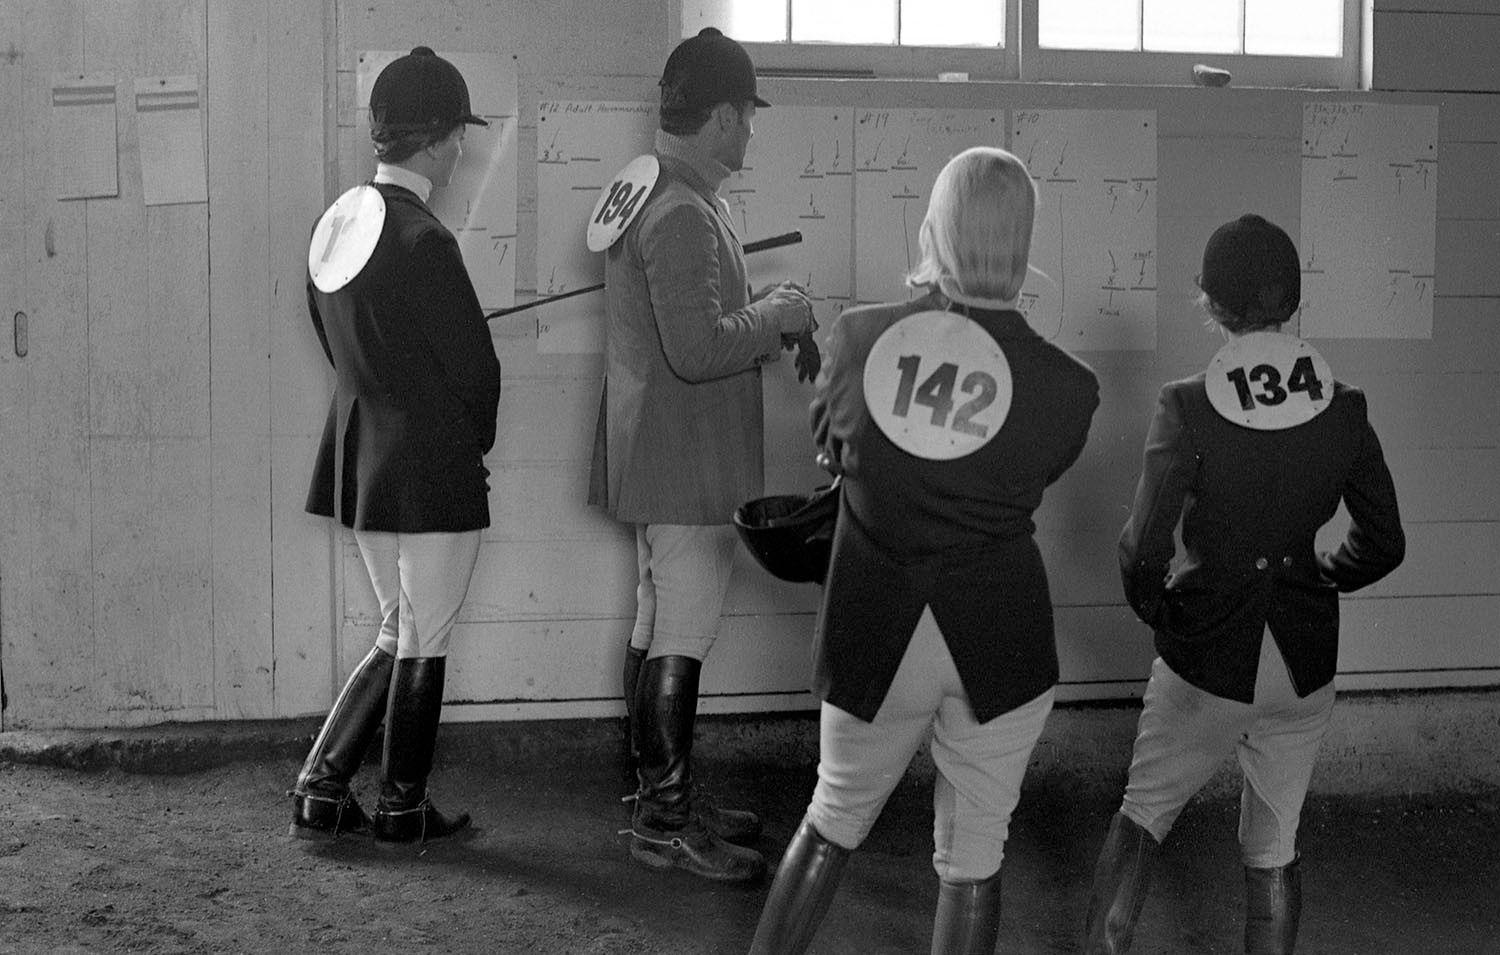 Equestrian Riders Looking at Chart